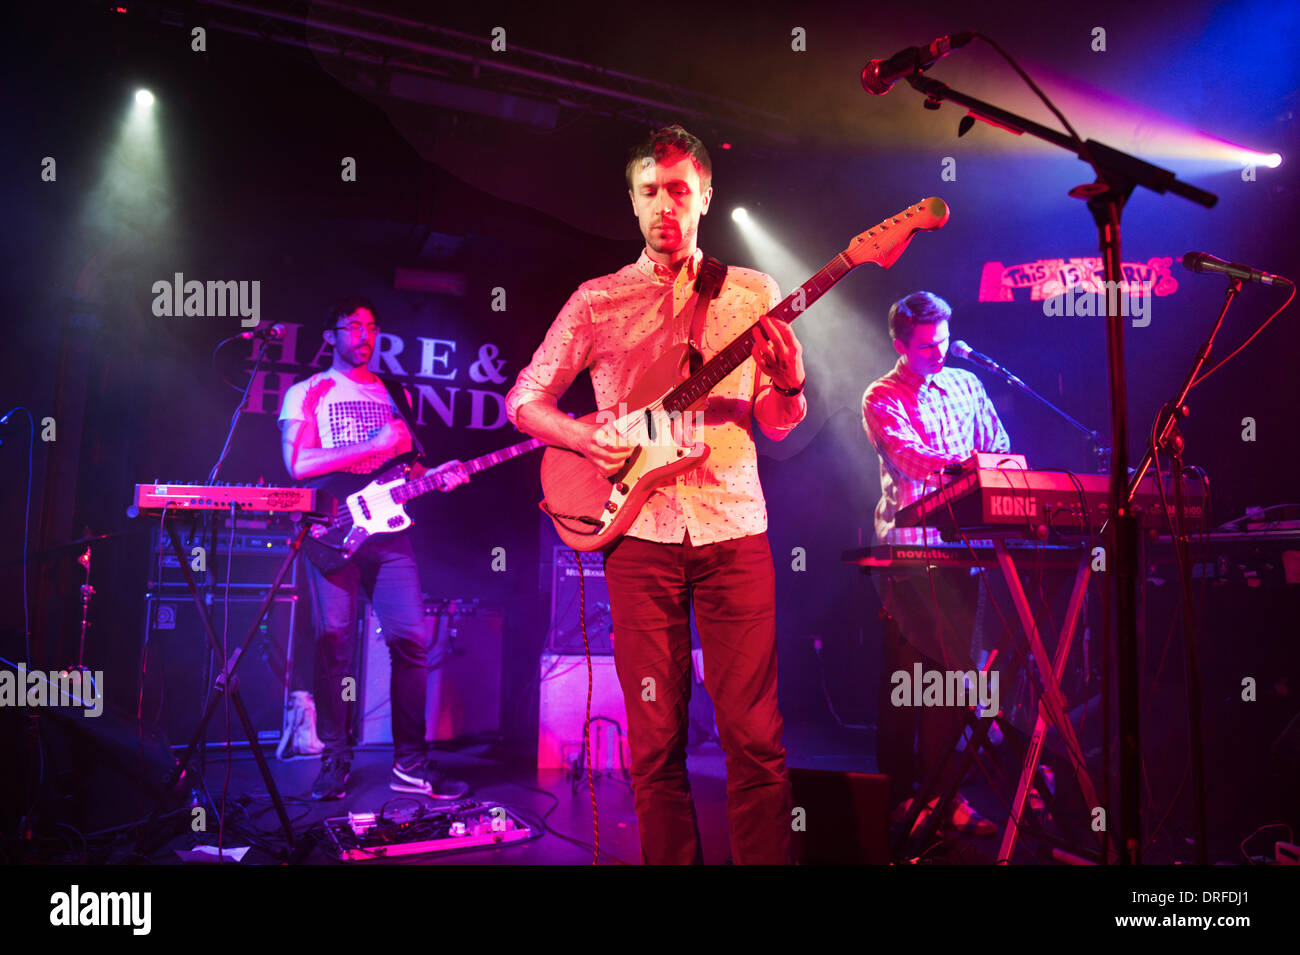 Birmingham, UK. 23rd January 2014. British rock band Teleman perform a gig at The Hare & Hounds, King's Heath, Birmingham. Lead singer and guitarist (front) Thomas Sanders. - Stock Image